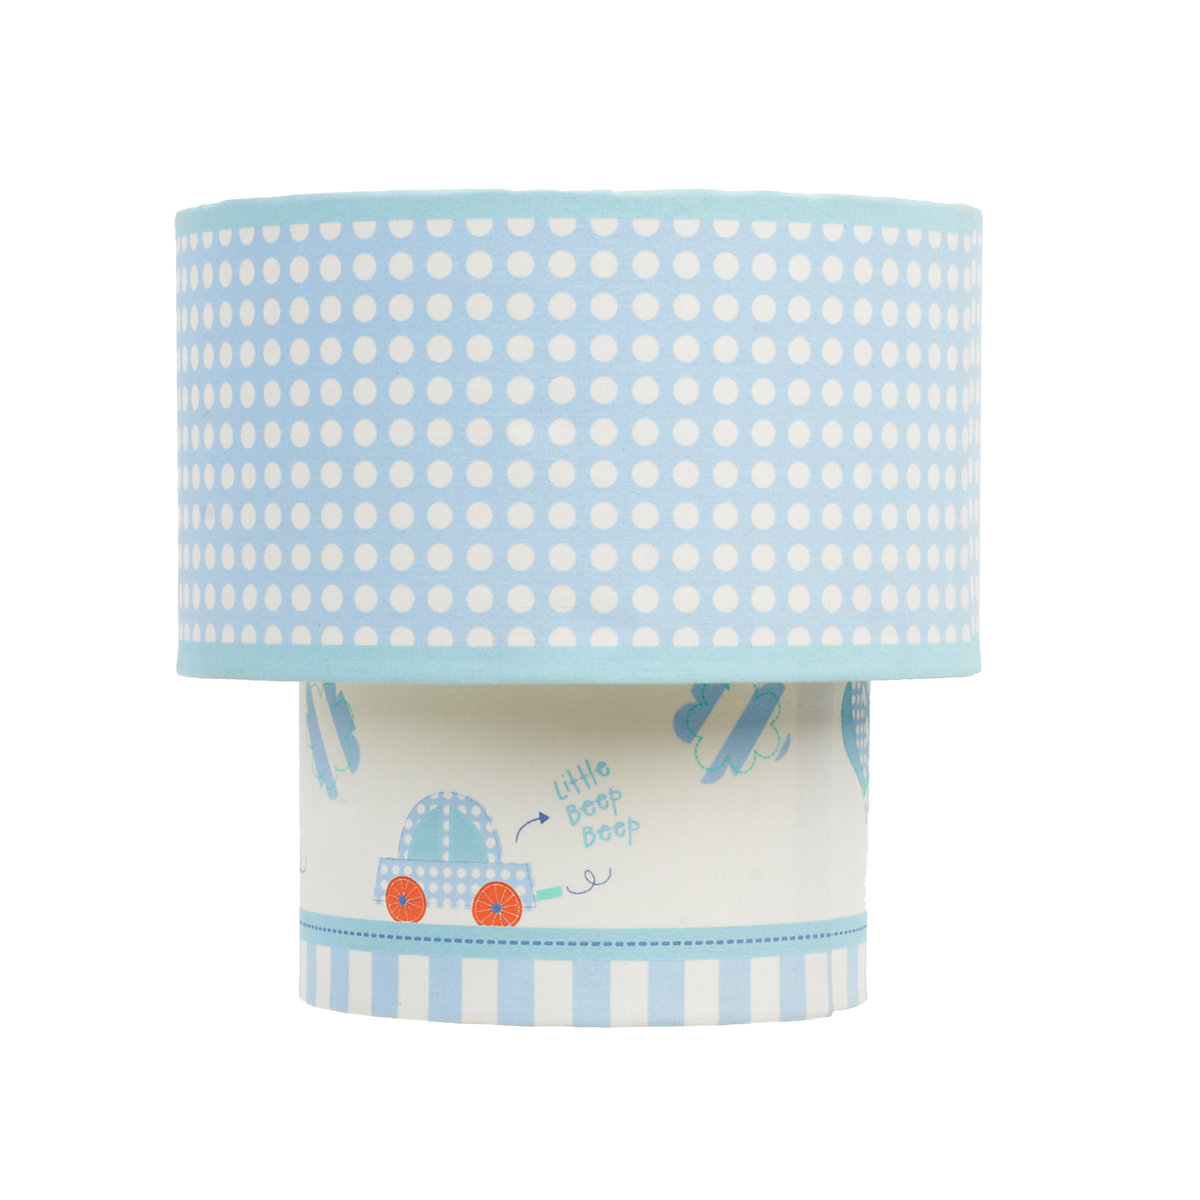 Mothercare Little Beep Beep Lampshade